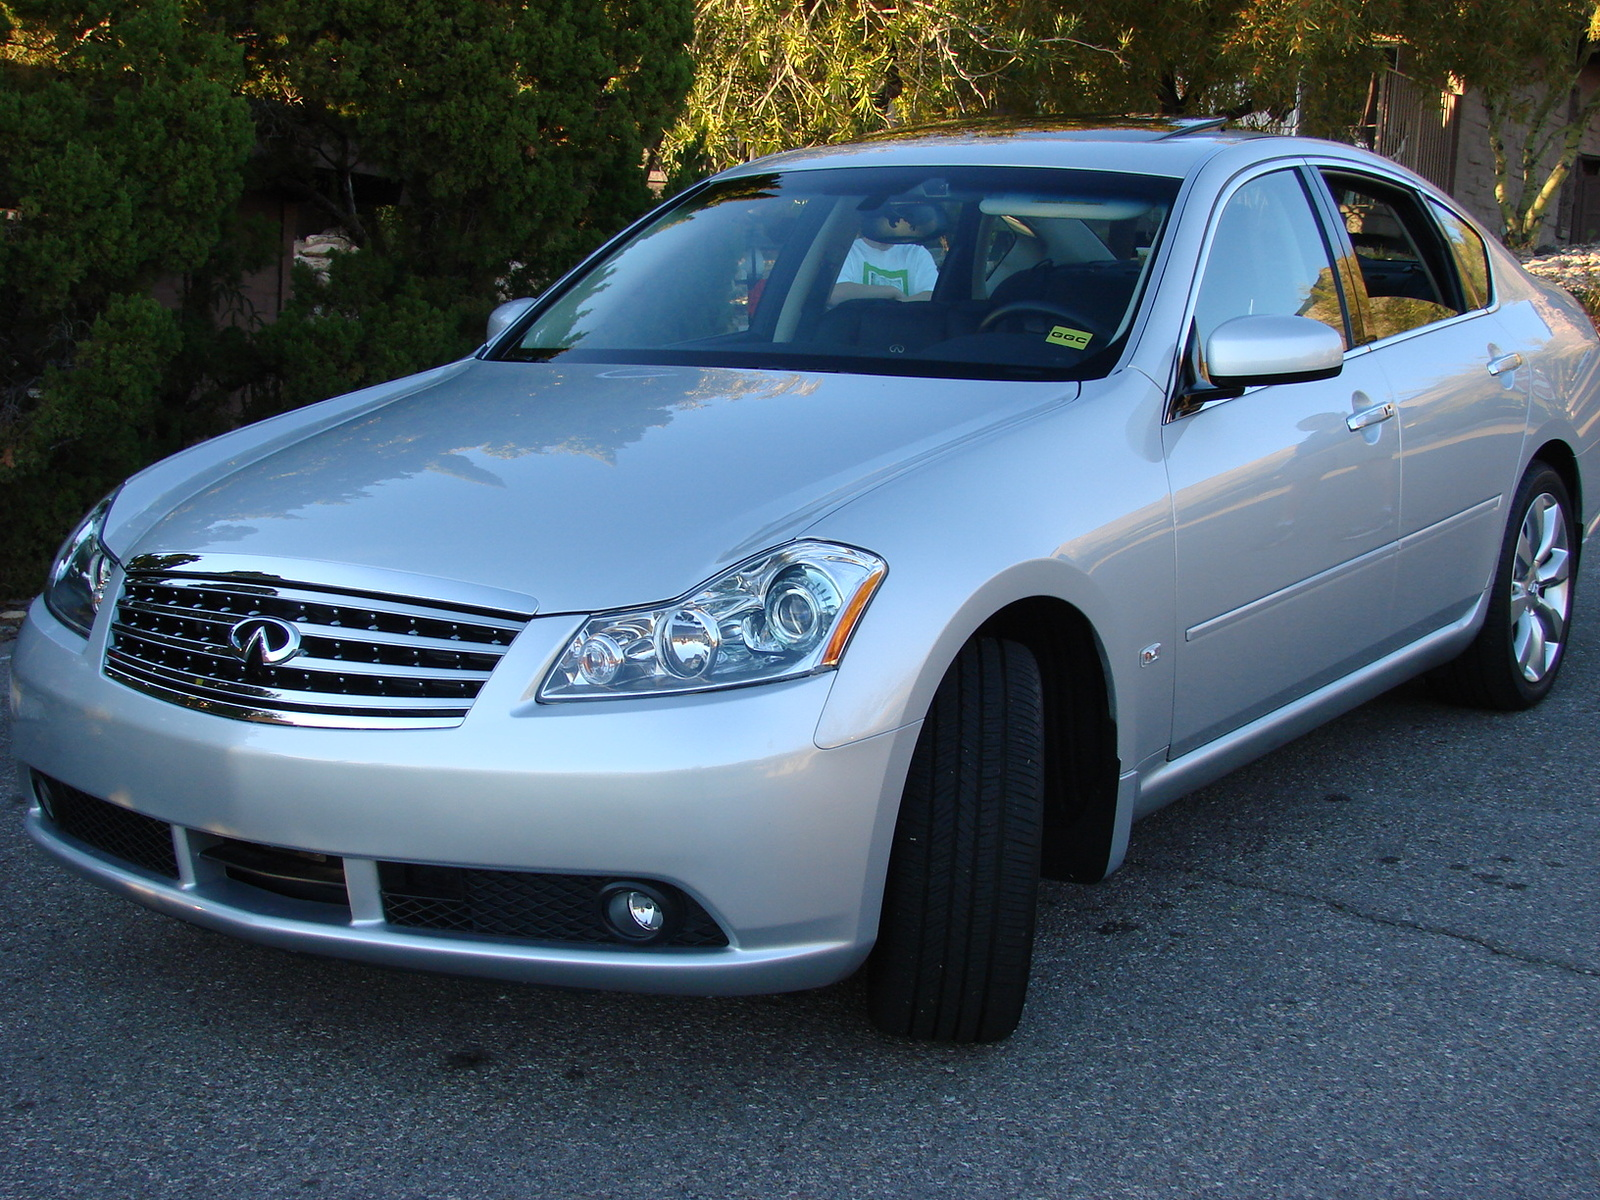 2006 Infiniti M35 Luxury picture